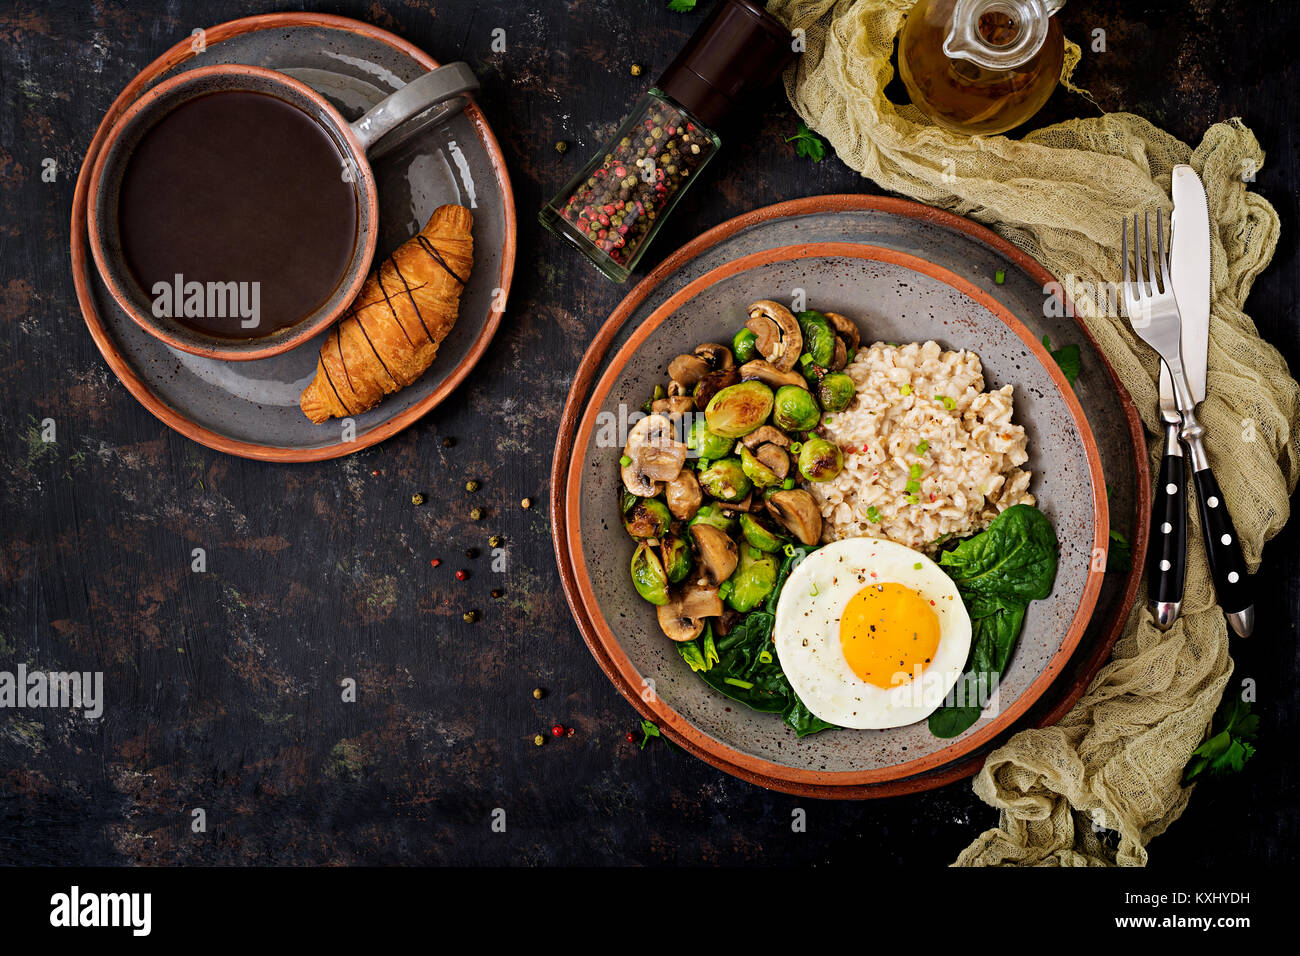 Healthy breakfast. Oat porridge, egg and salad of baked vegetables - mushrooms and Brussels sprouts. Healthy lifestyle. - Stock Image